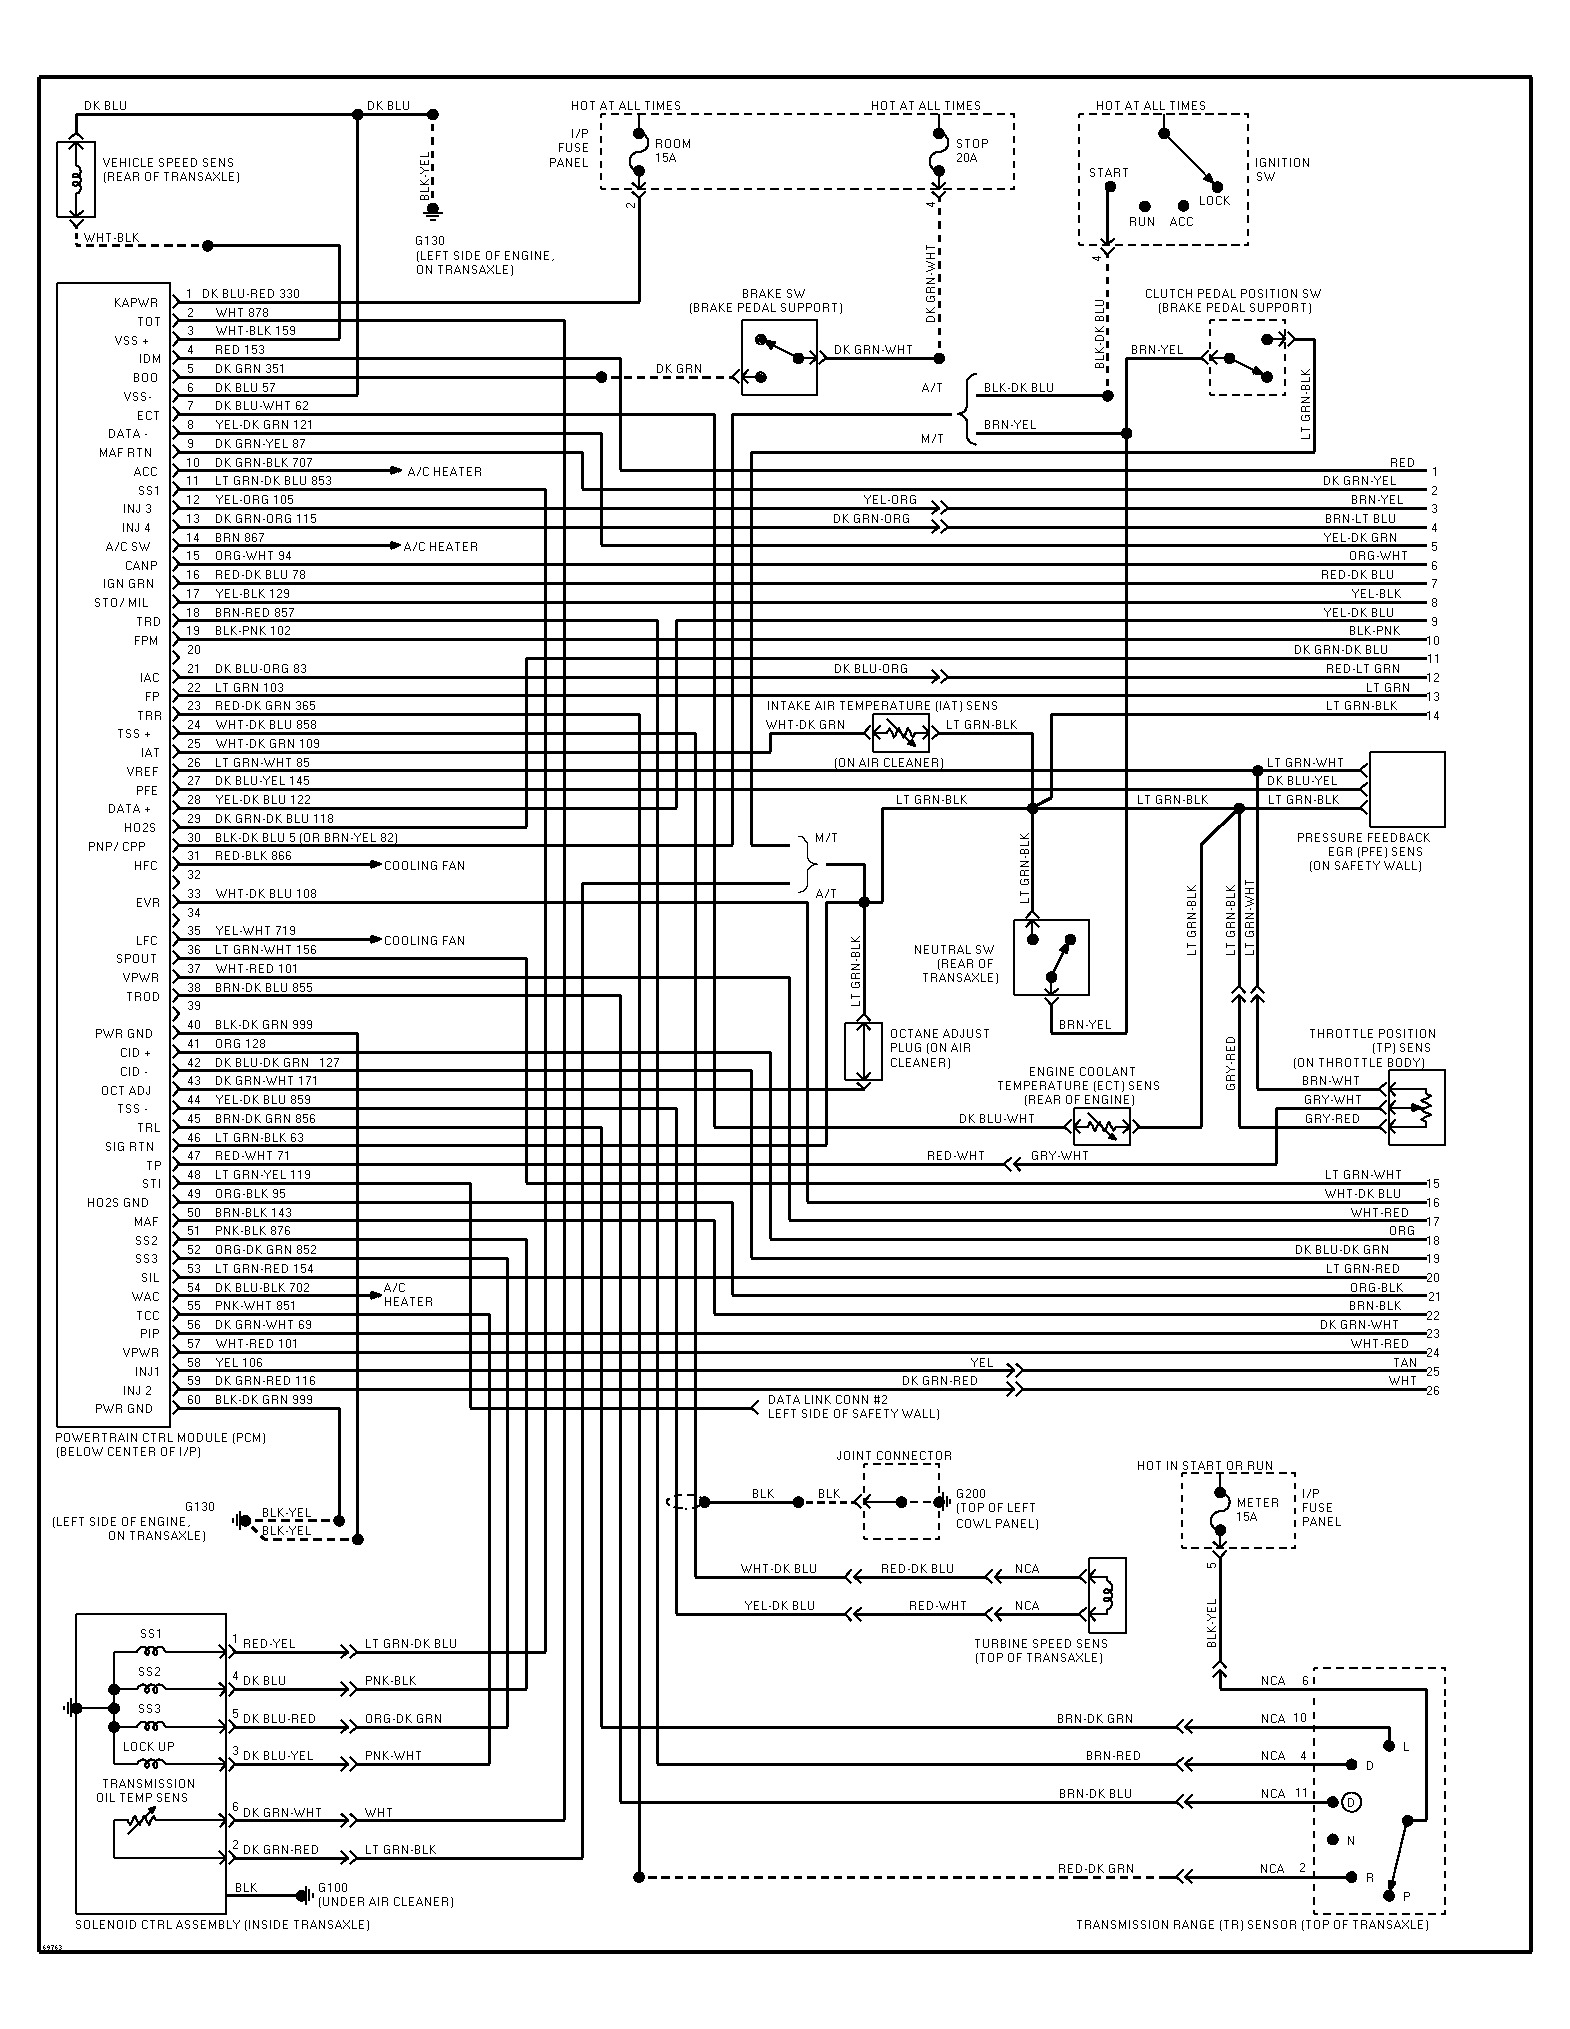 original 1995 ford escort wiring diagram i need to find a color coded 1998 ford escort wiring diagram at soozxer.org